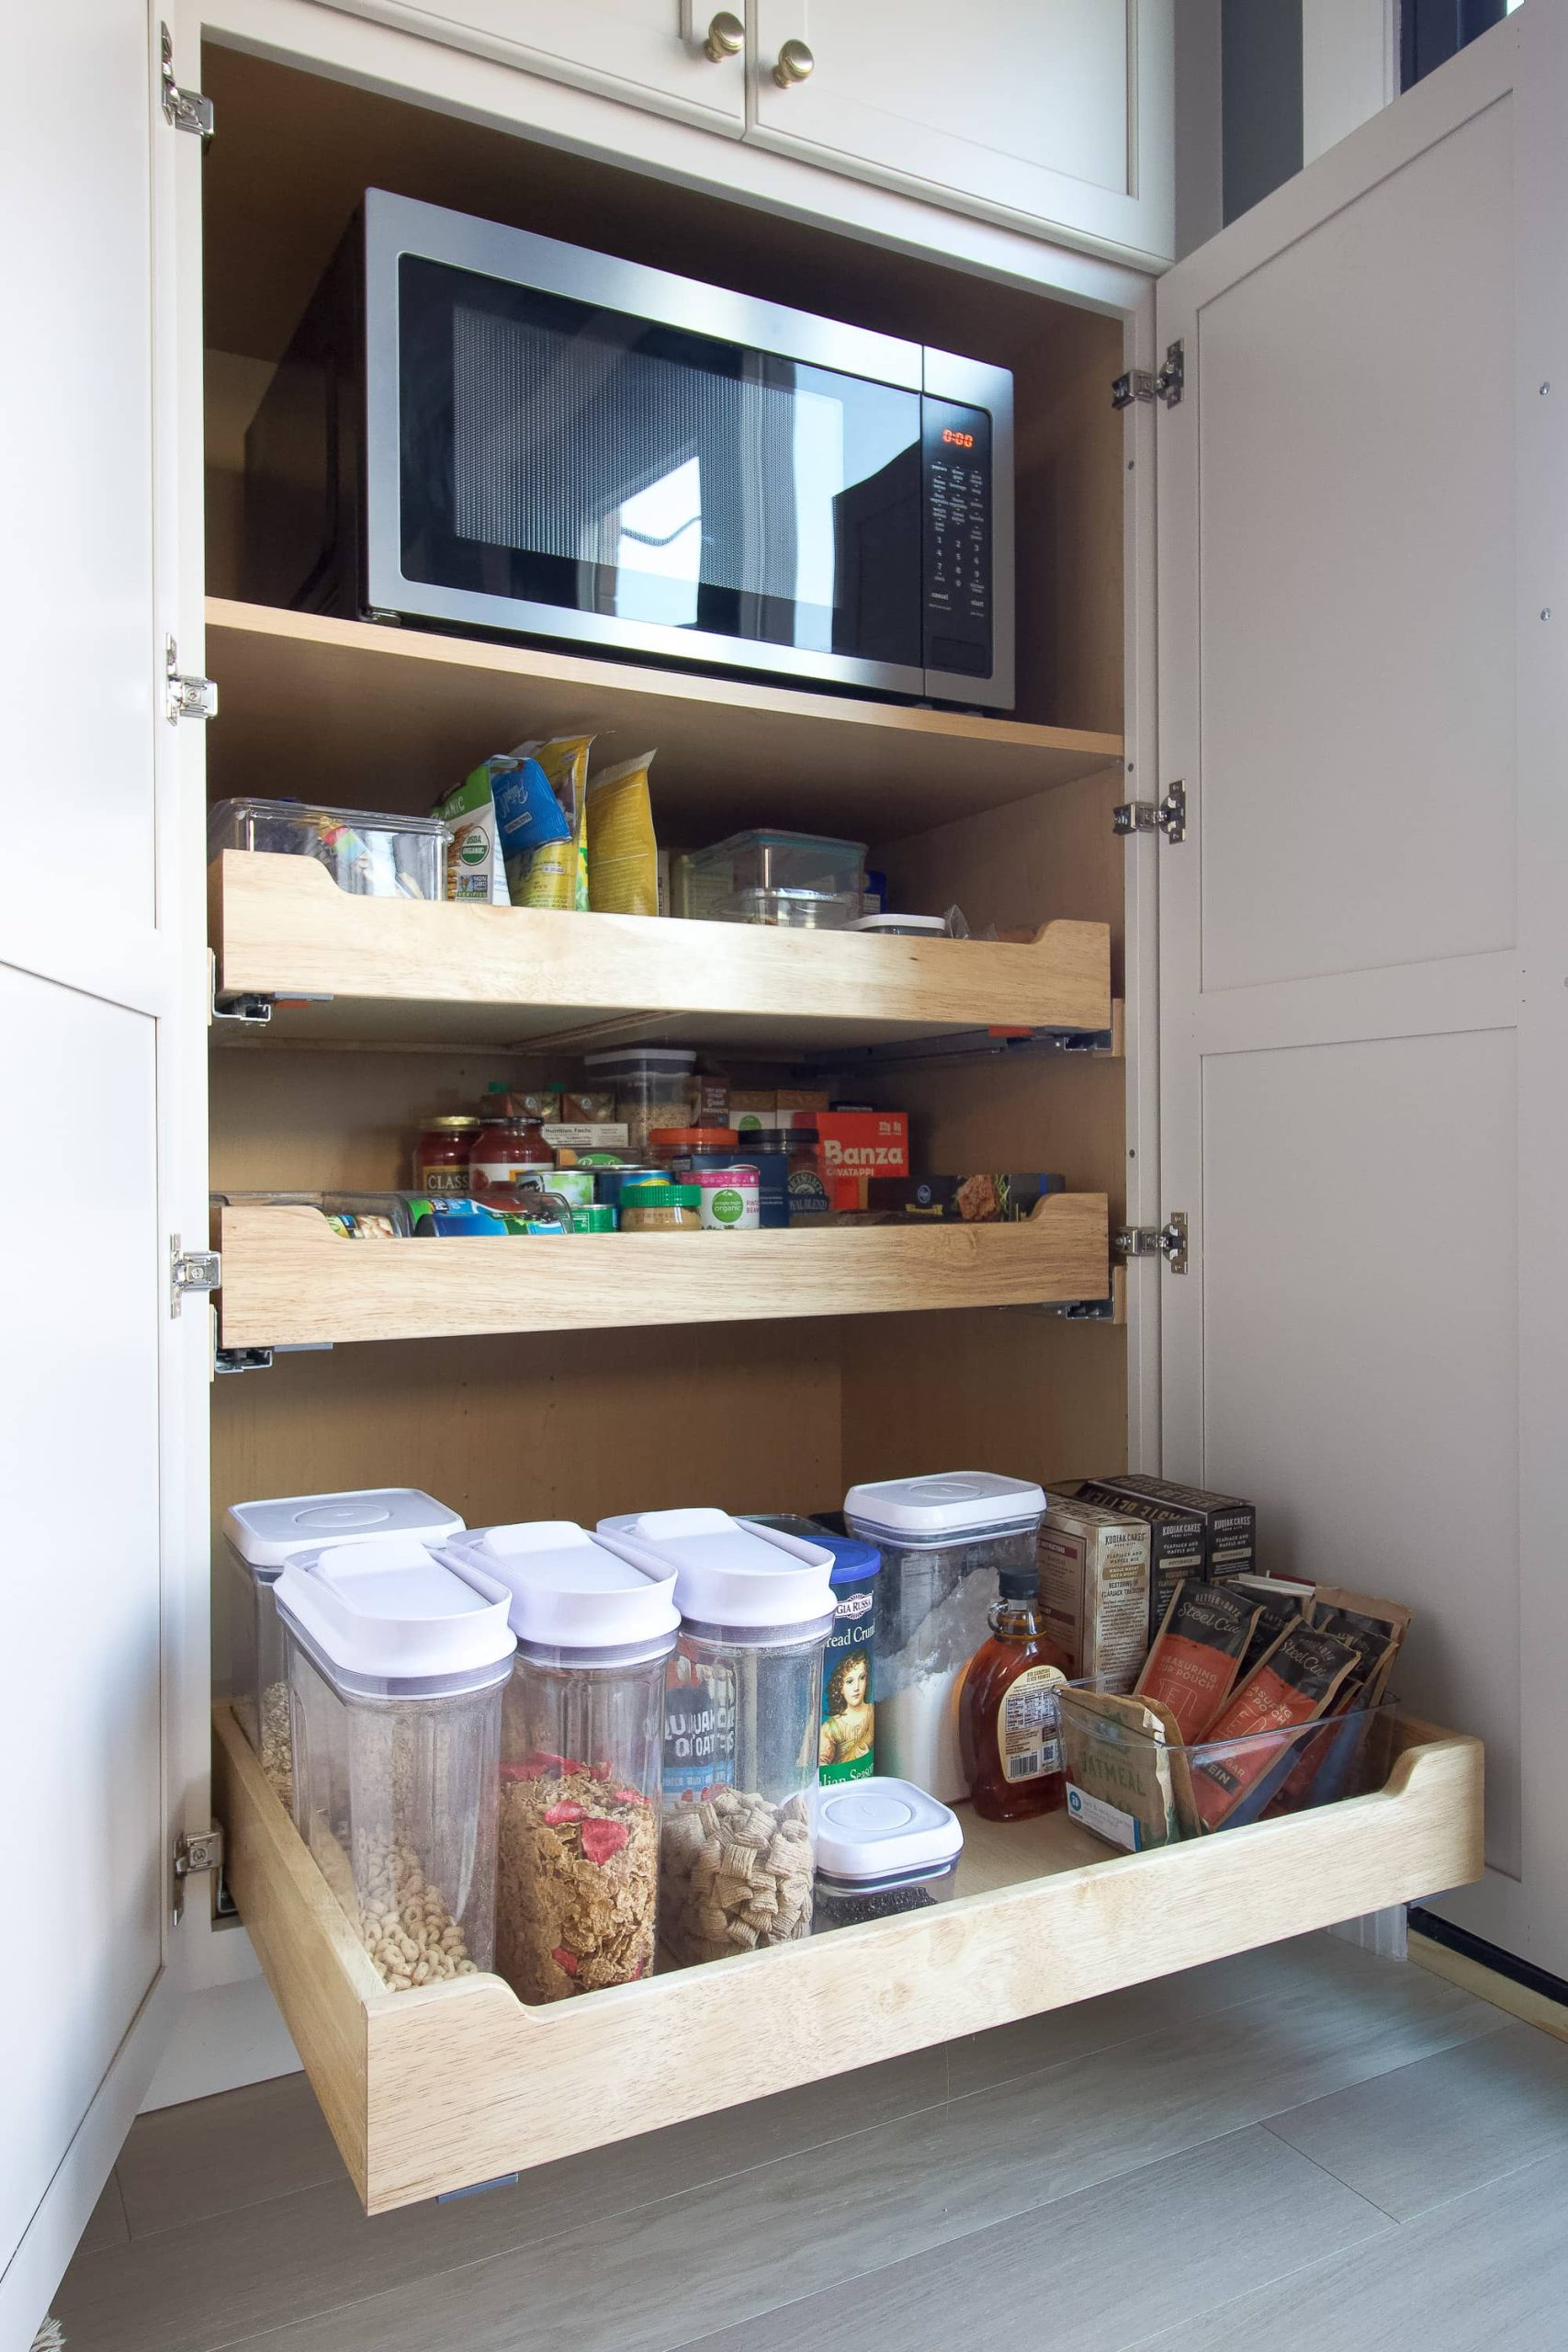 Our new kitchen pantry drawers